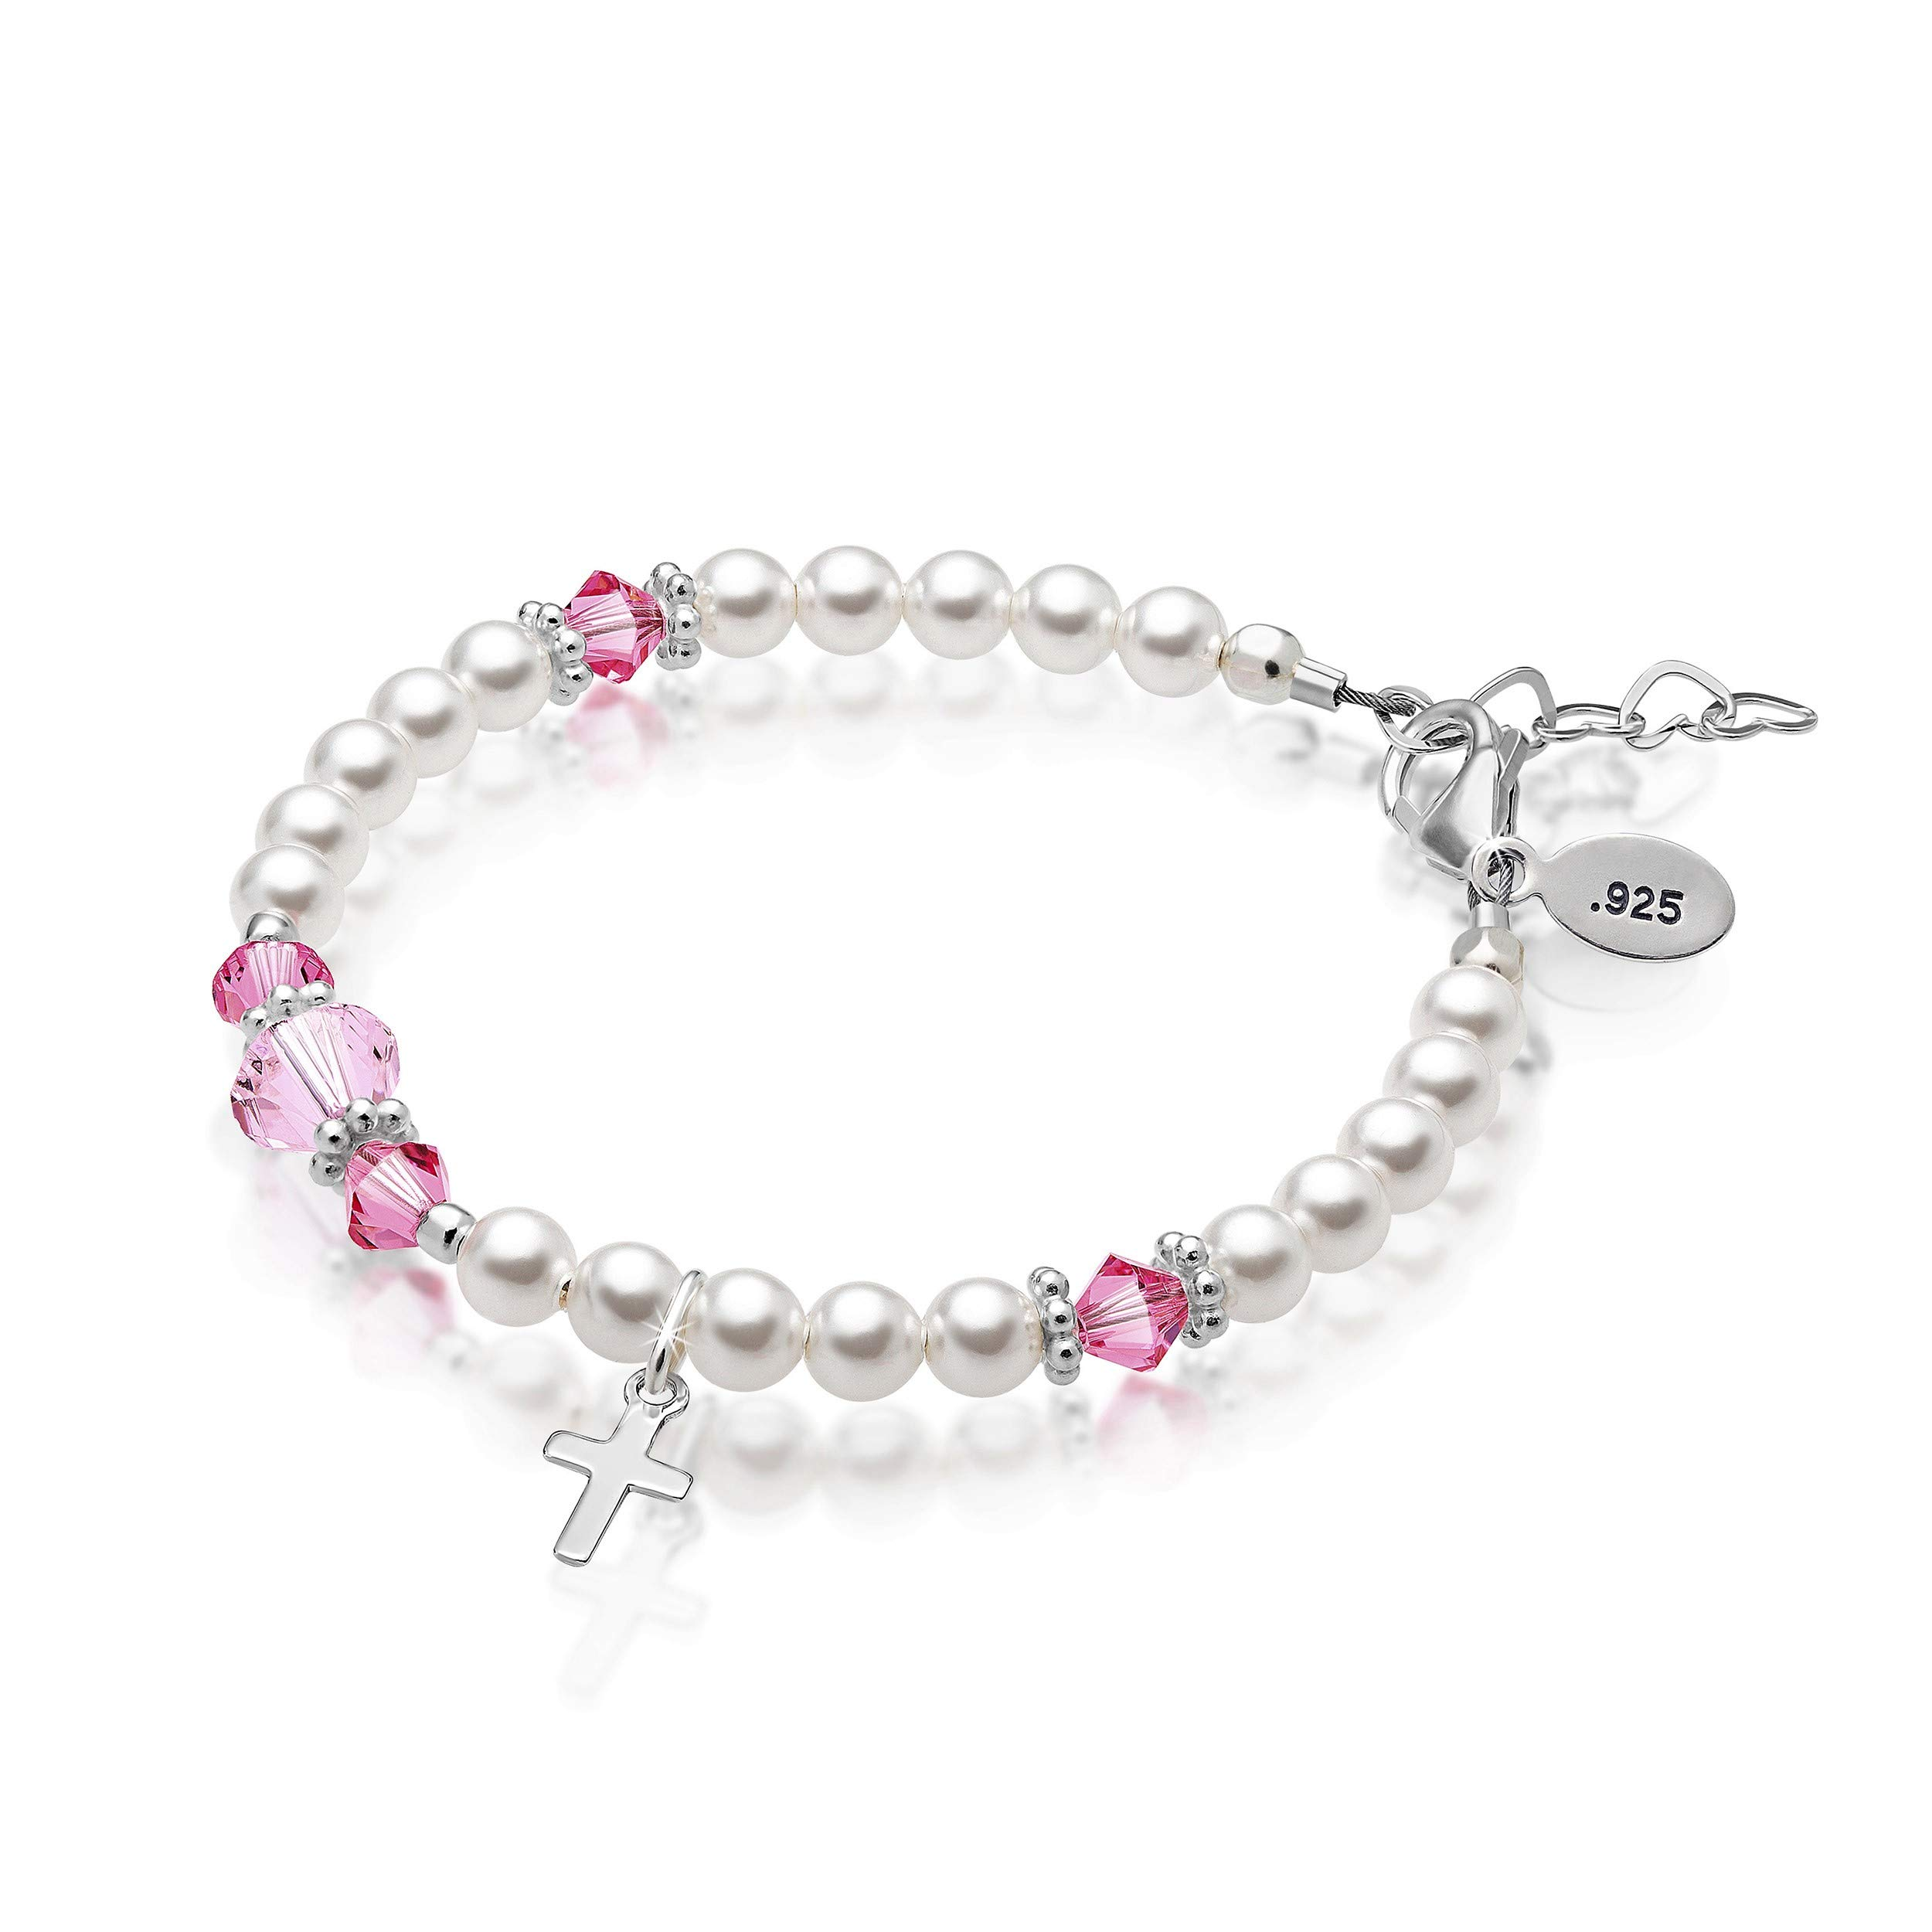 Baby Crystals Baptism Bracelet for Girls - Sterling Silver Cross Charm Bracelet - Swarovski Crystals for Baptism or Christening Jewelry gifts (4-12 Years) First Communion Jewelry for Girls